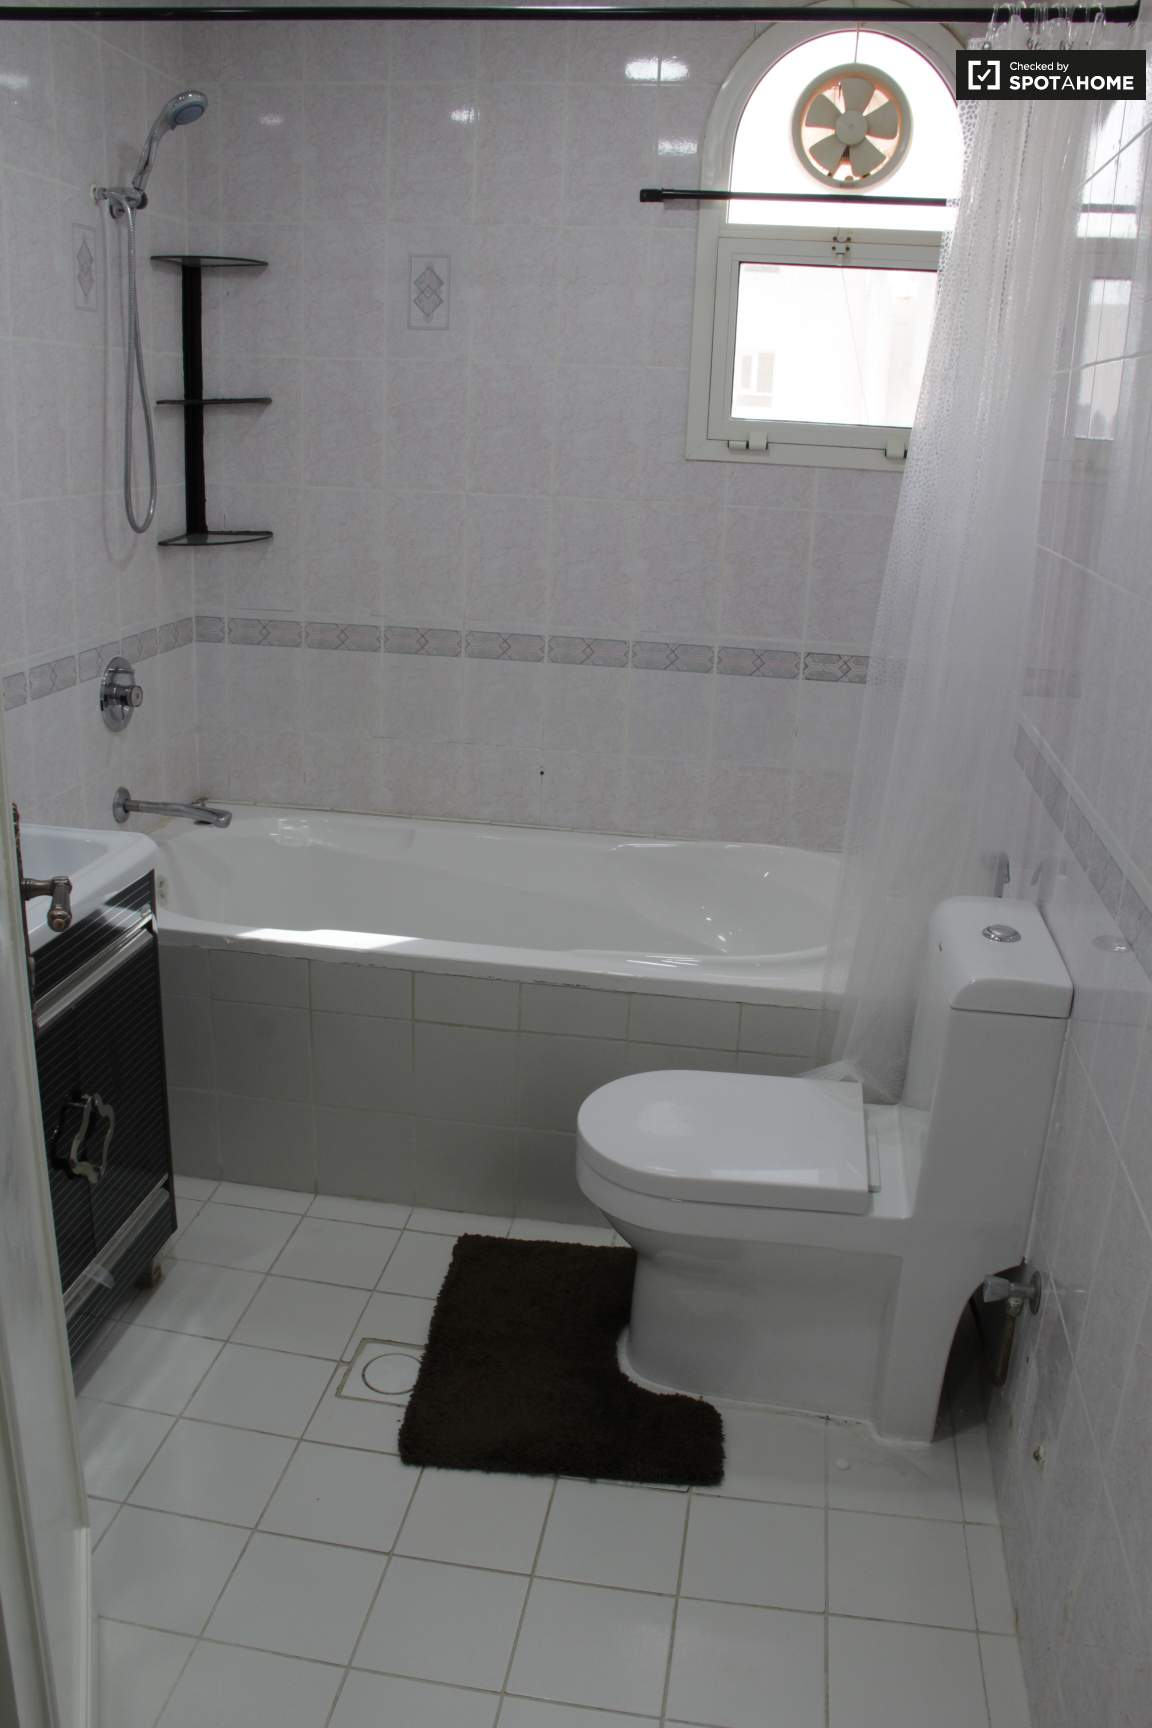 Bedroom 1 - Ensuite Bathroom